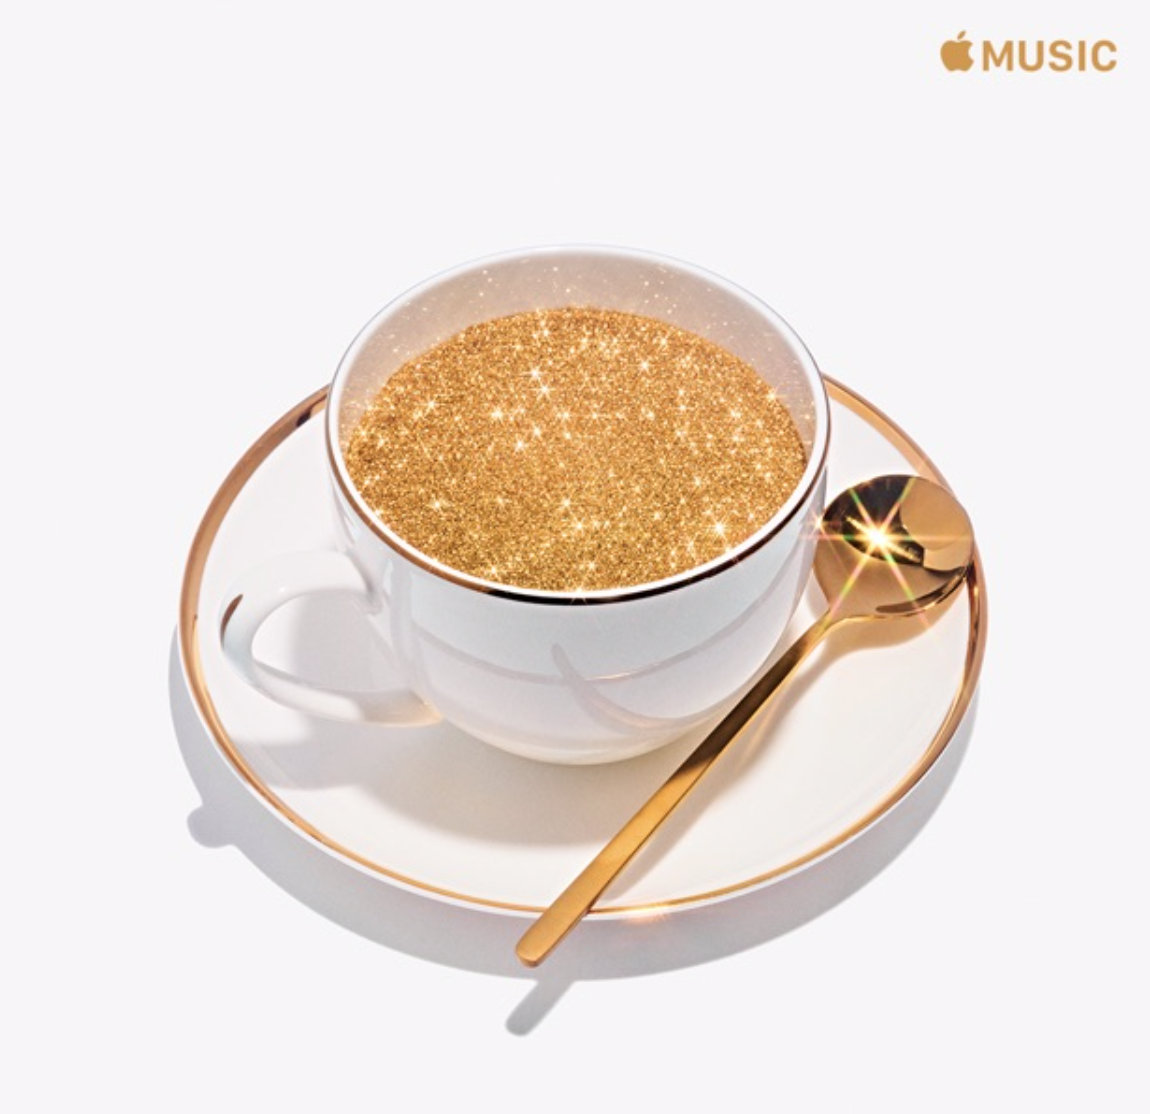 Easy Hits Apple Music Playlist